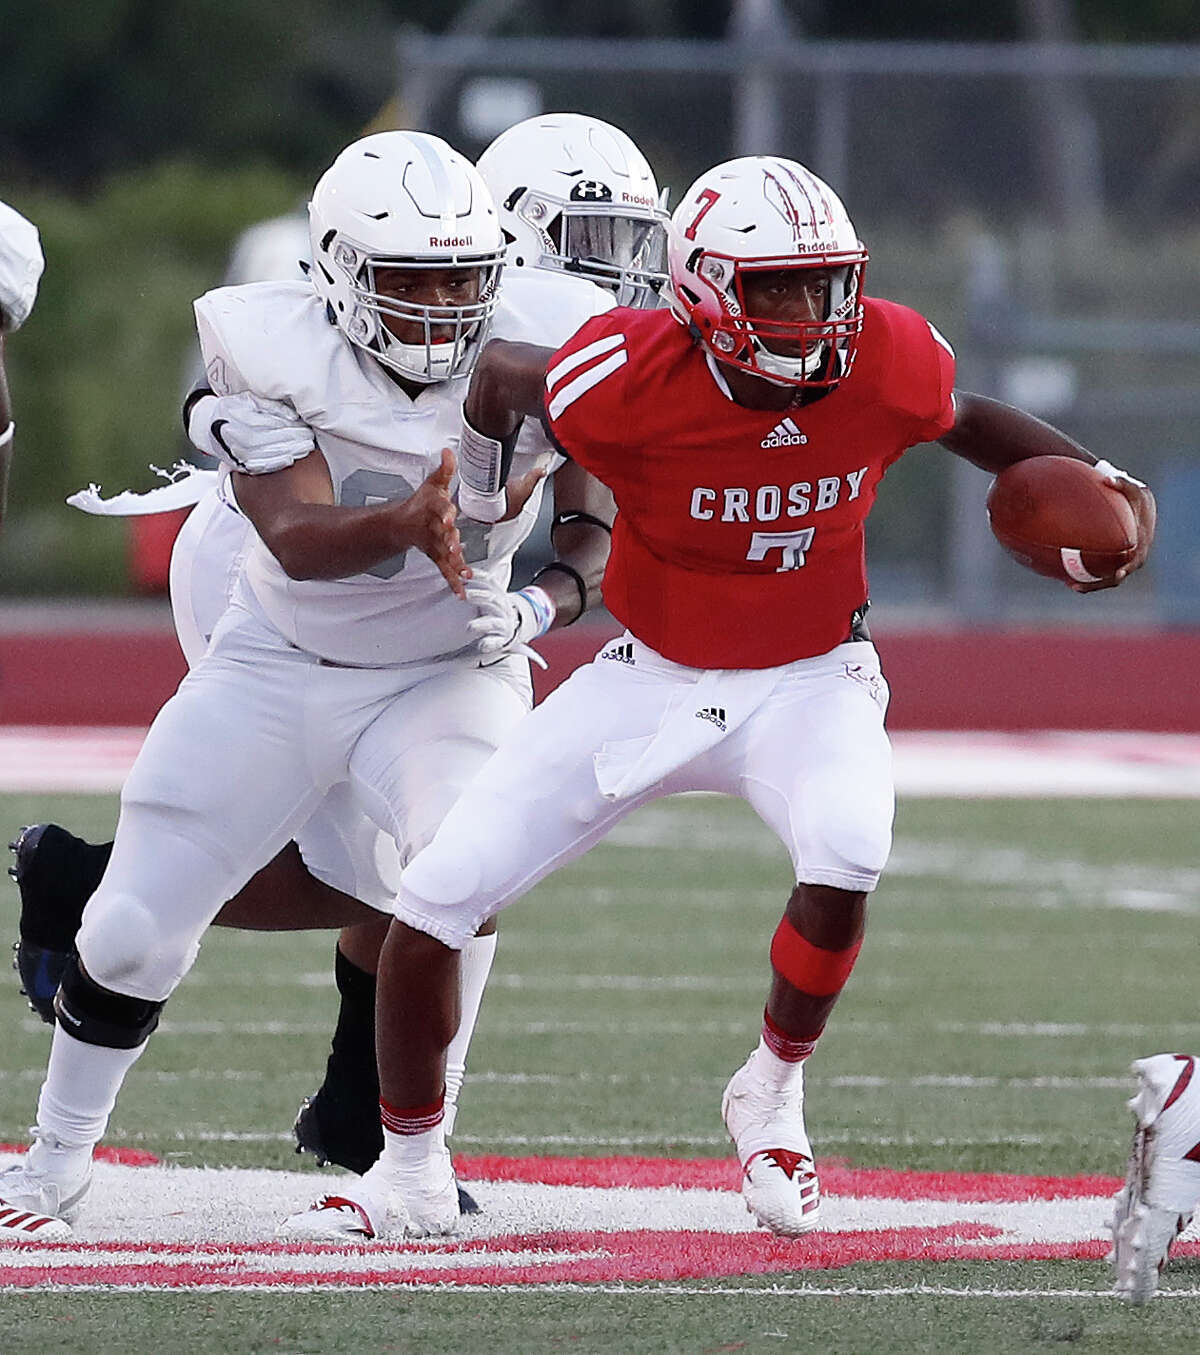 Crosby quarterback Jaiden Howard (7) scrambles to gain yardage against the Manvel defense during the first half of a high school football game at Cougar Stadium between Manvel and Crosby High Schools, Friday, September 7, 2018, in Crosby.